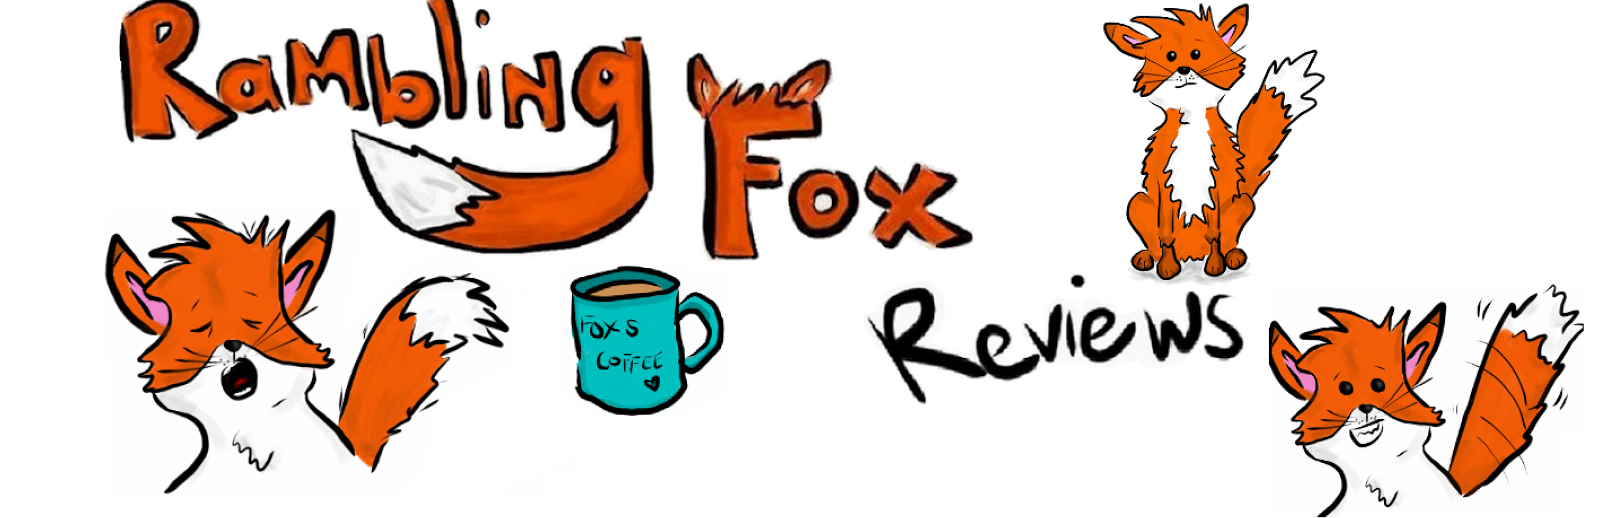 Rambling Fox Gaming Reviews